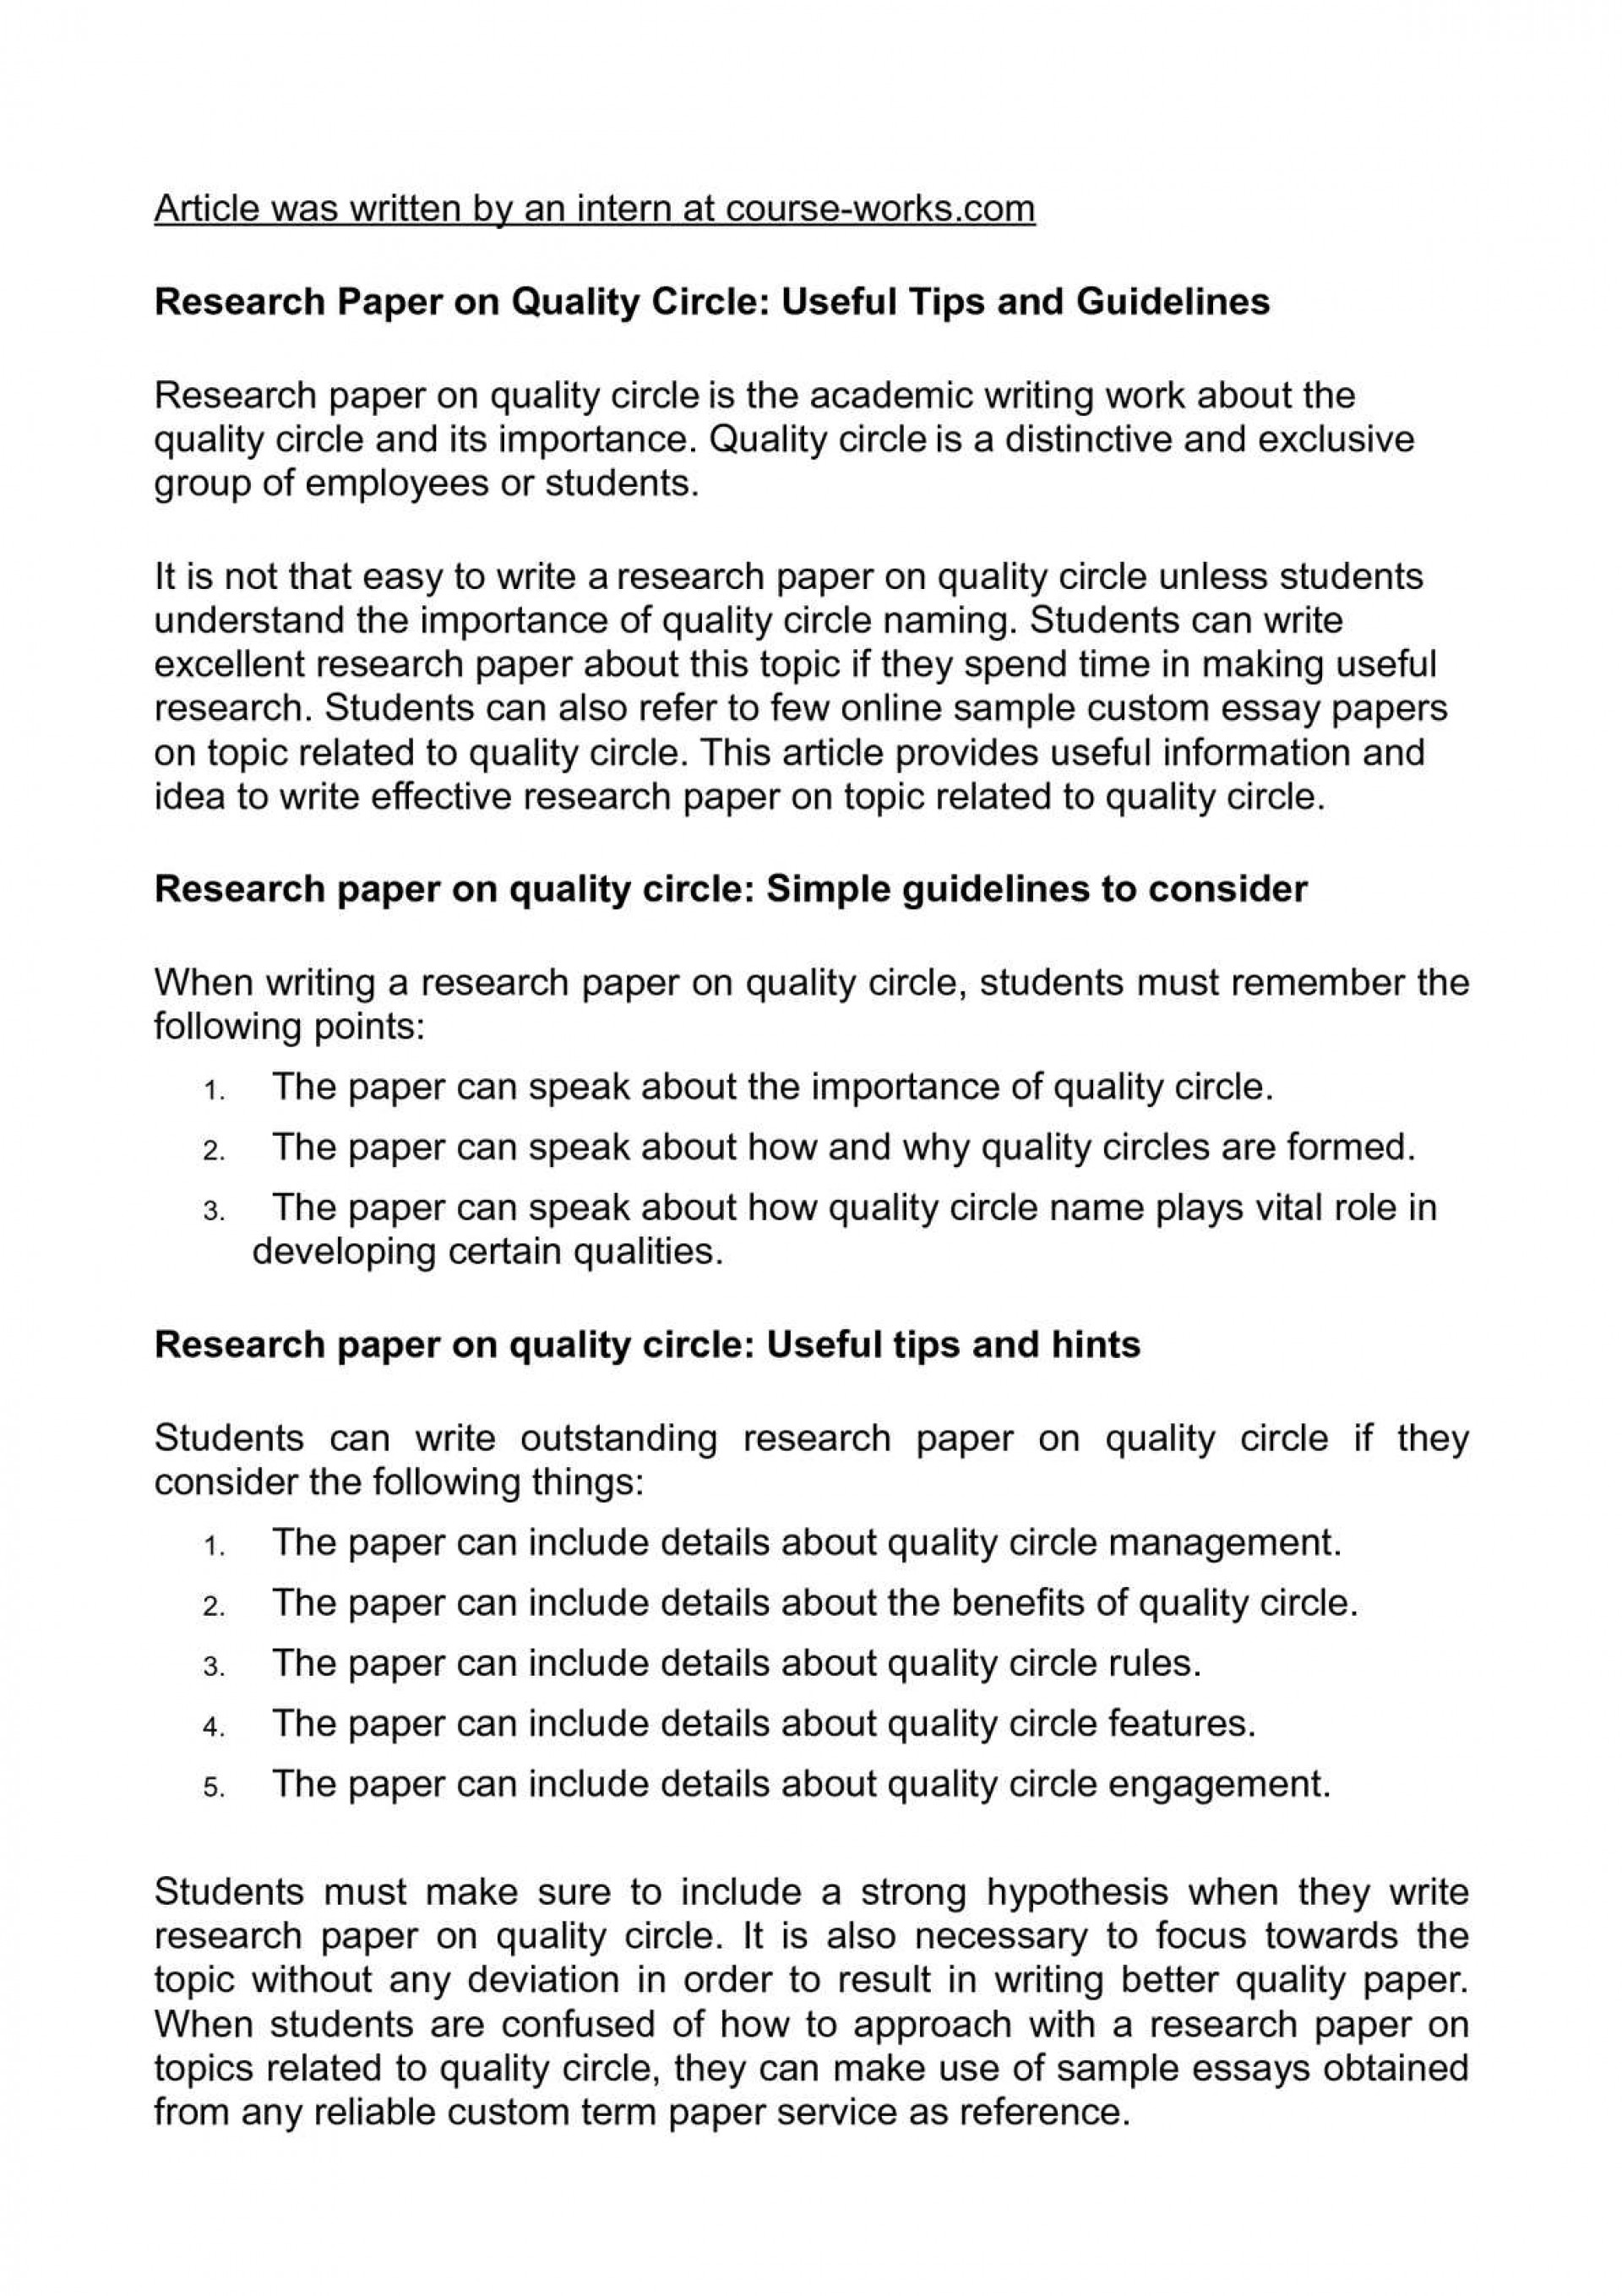 007 P1 Topics To Write Research Paper Beautiful On A Persuasive Essay Your Economics 1920